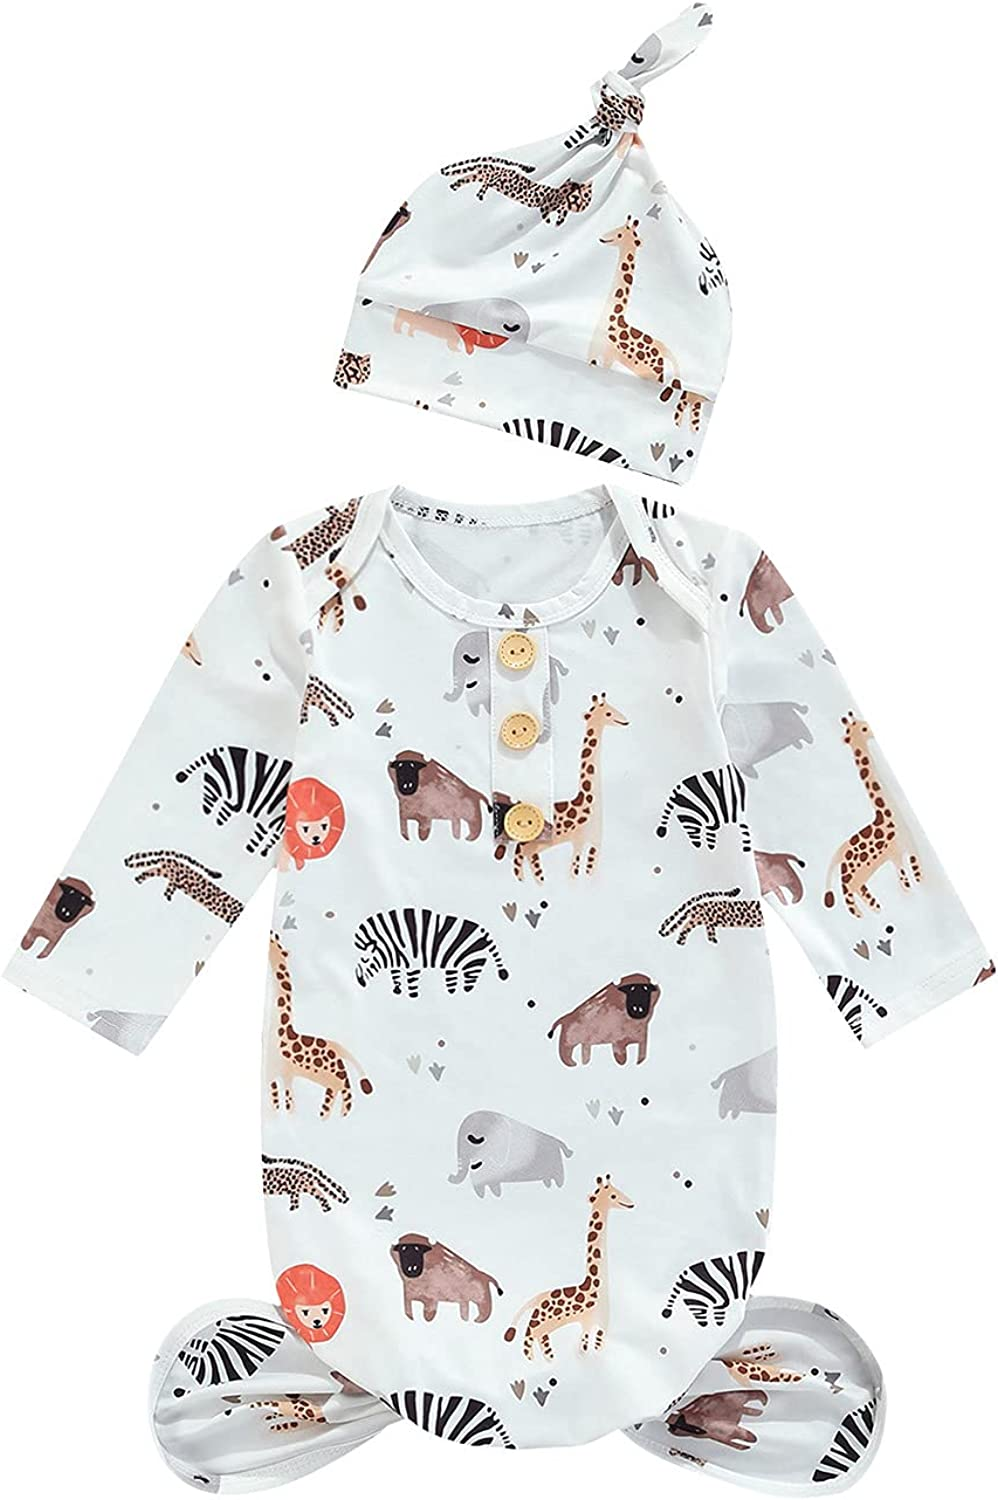 Newborn Baby Boy Girl Knotted Gowns Long Sleeve Printed Sleeping Bag Coming Home Outfit Nightgown Pajamas Hat Set